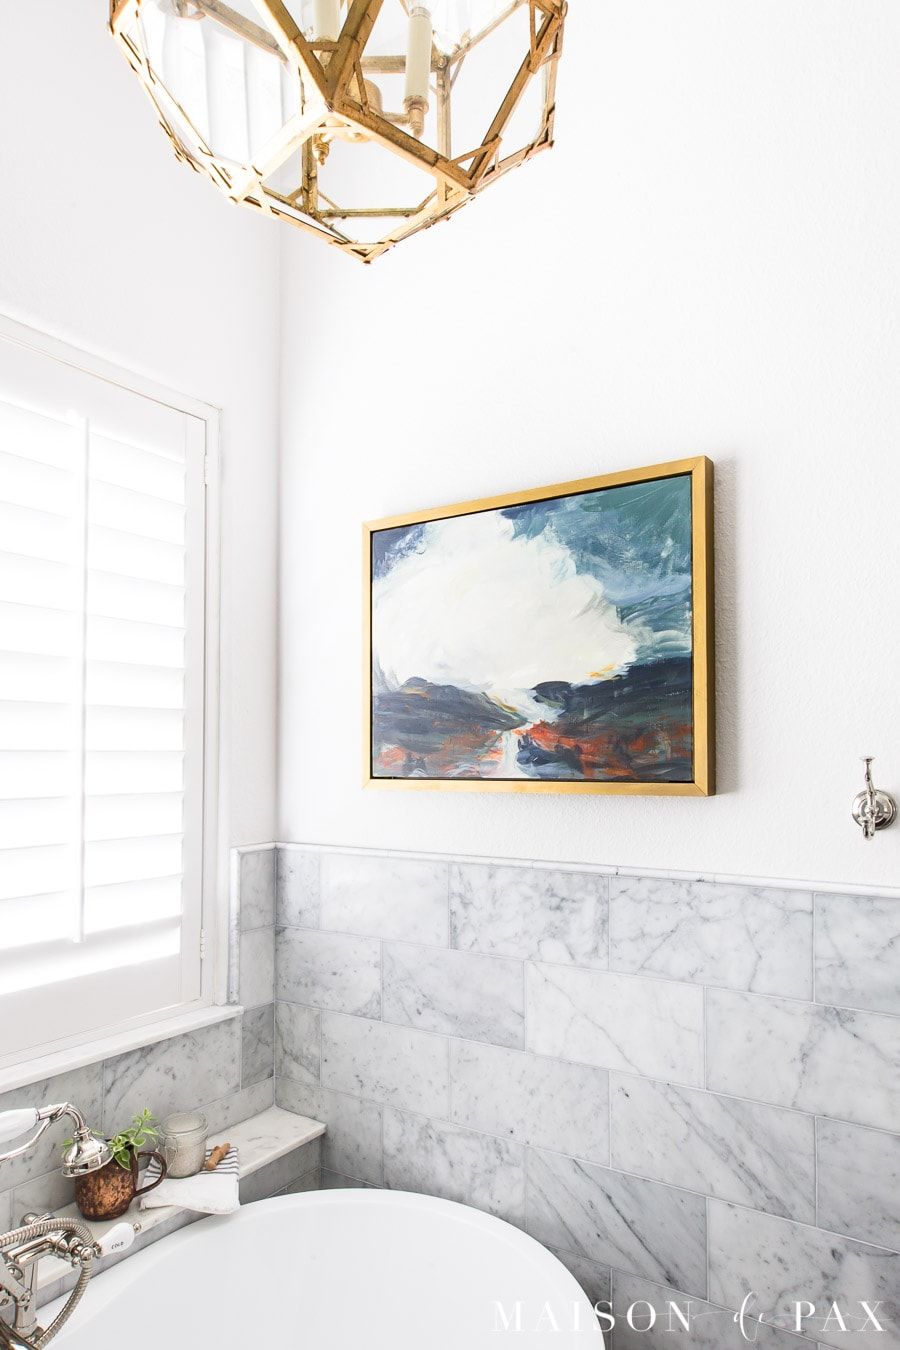 framed art canvas above tub | Maison de Pax